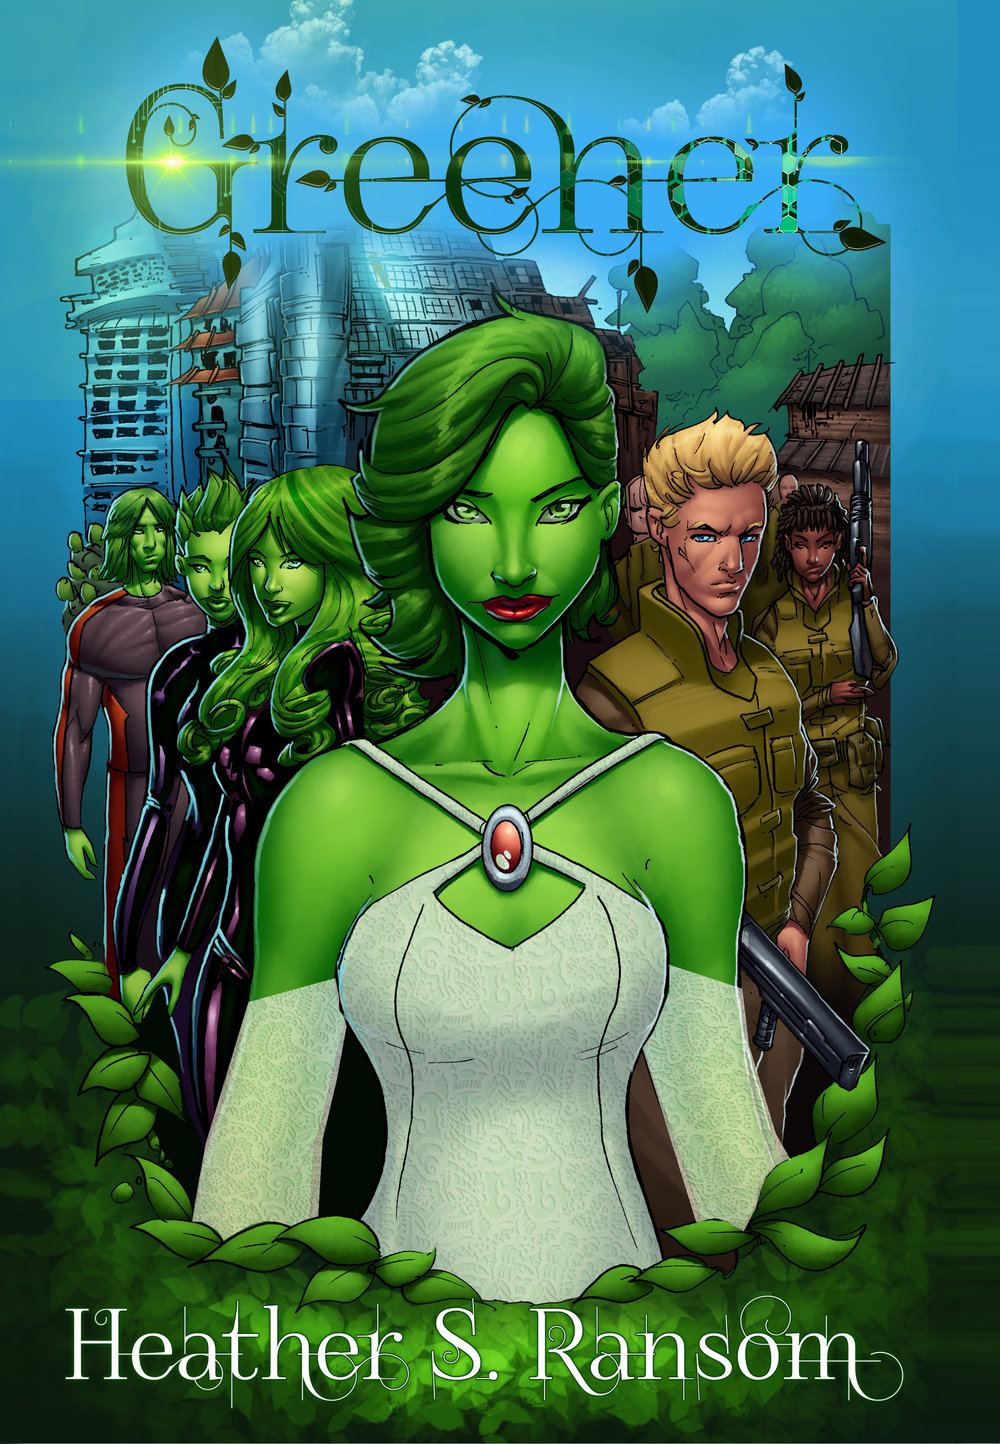 cover by Randy Kintz, coloring by Marcus Odom, and lettering by Kevin Snyder